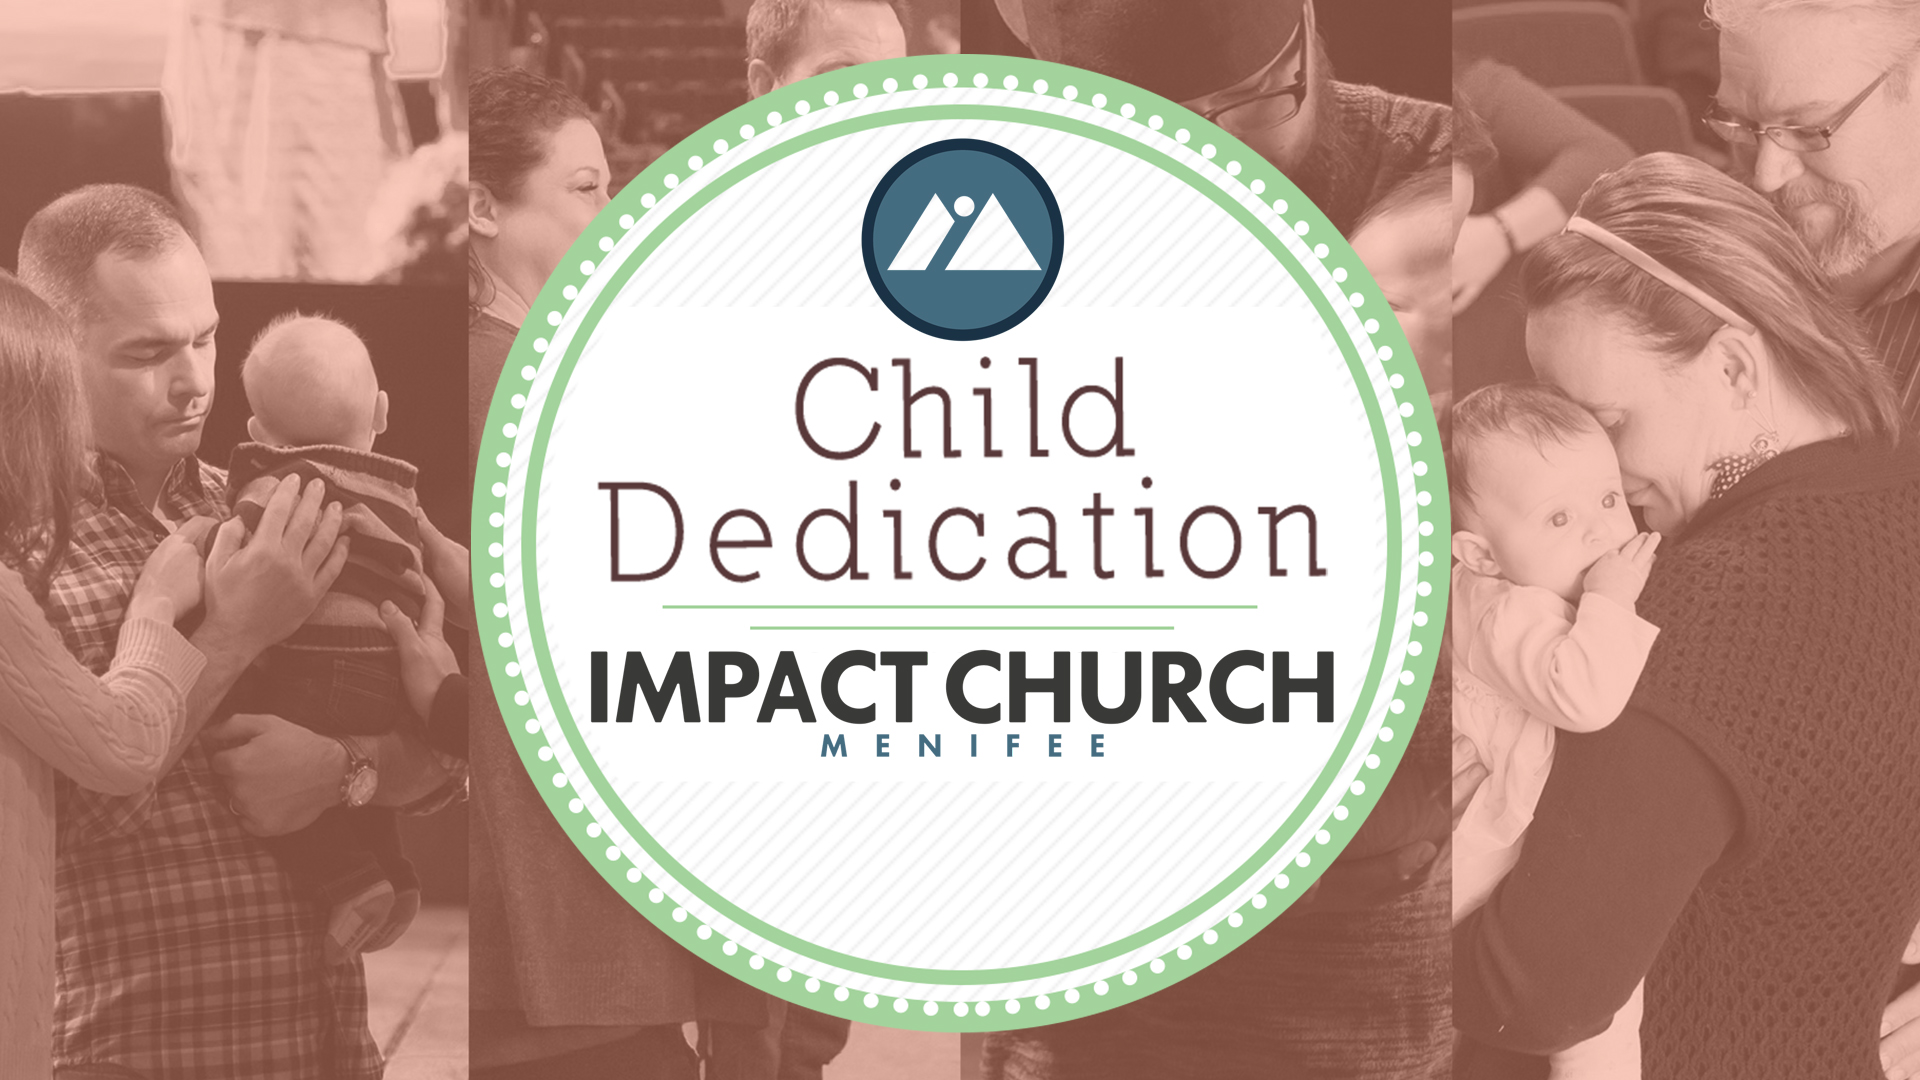 Child-Dedication - New Logo.jpg